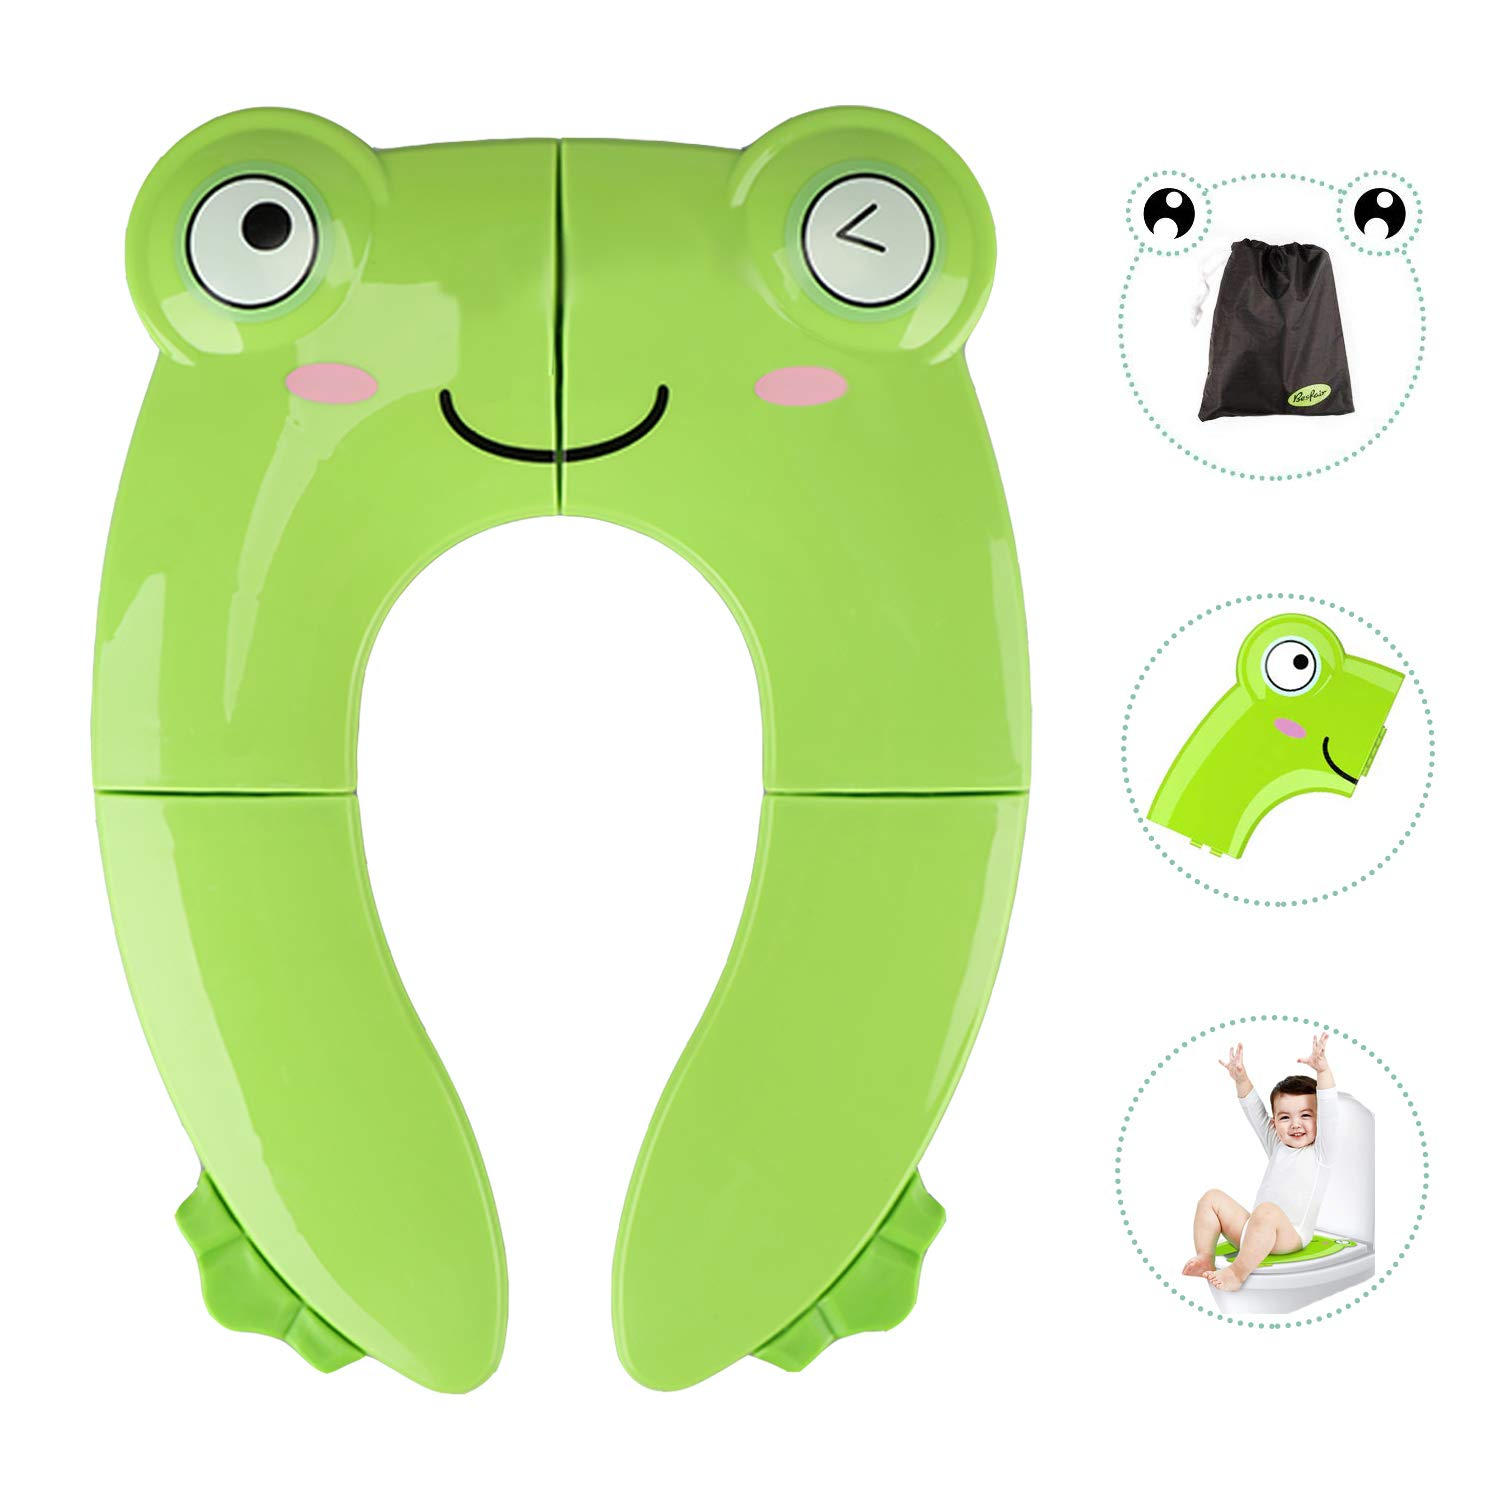 Maliton Portable Best Potty Seat for Toddler Travel